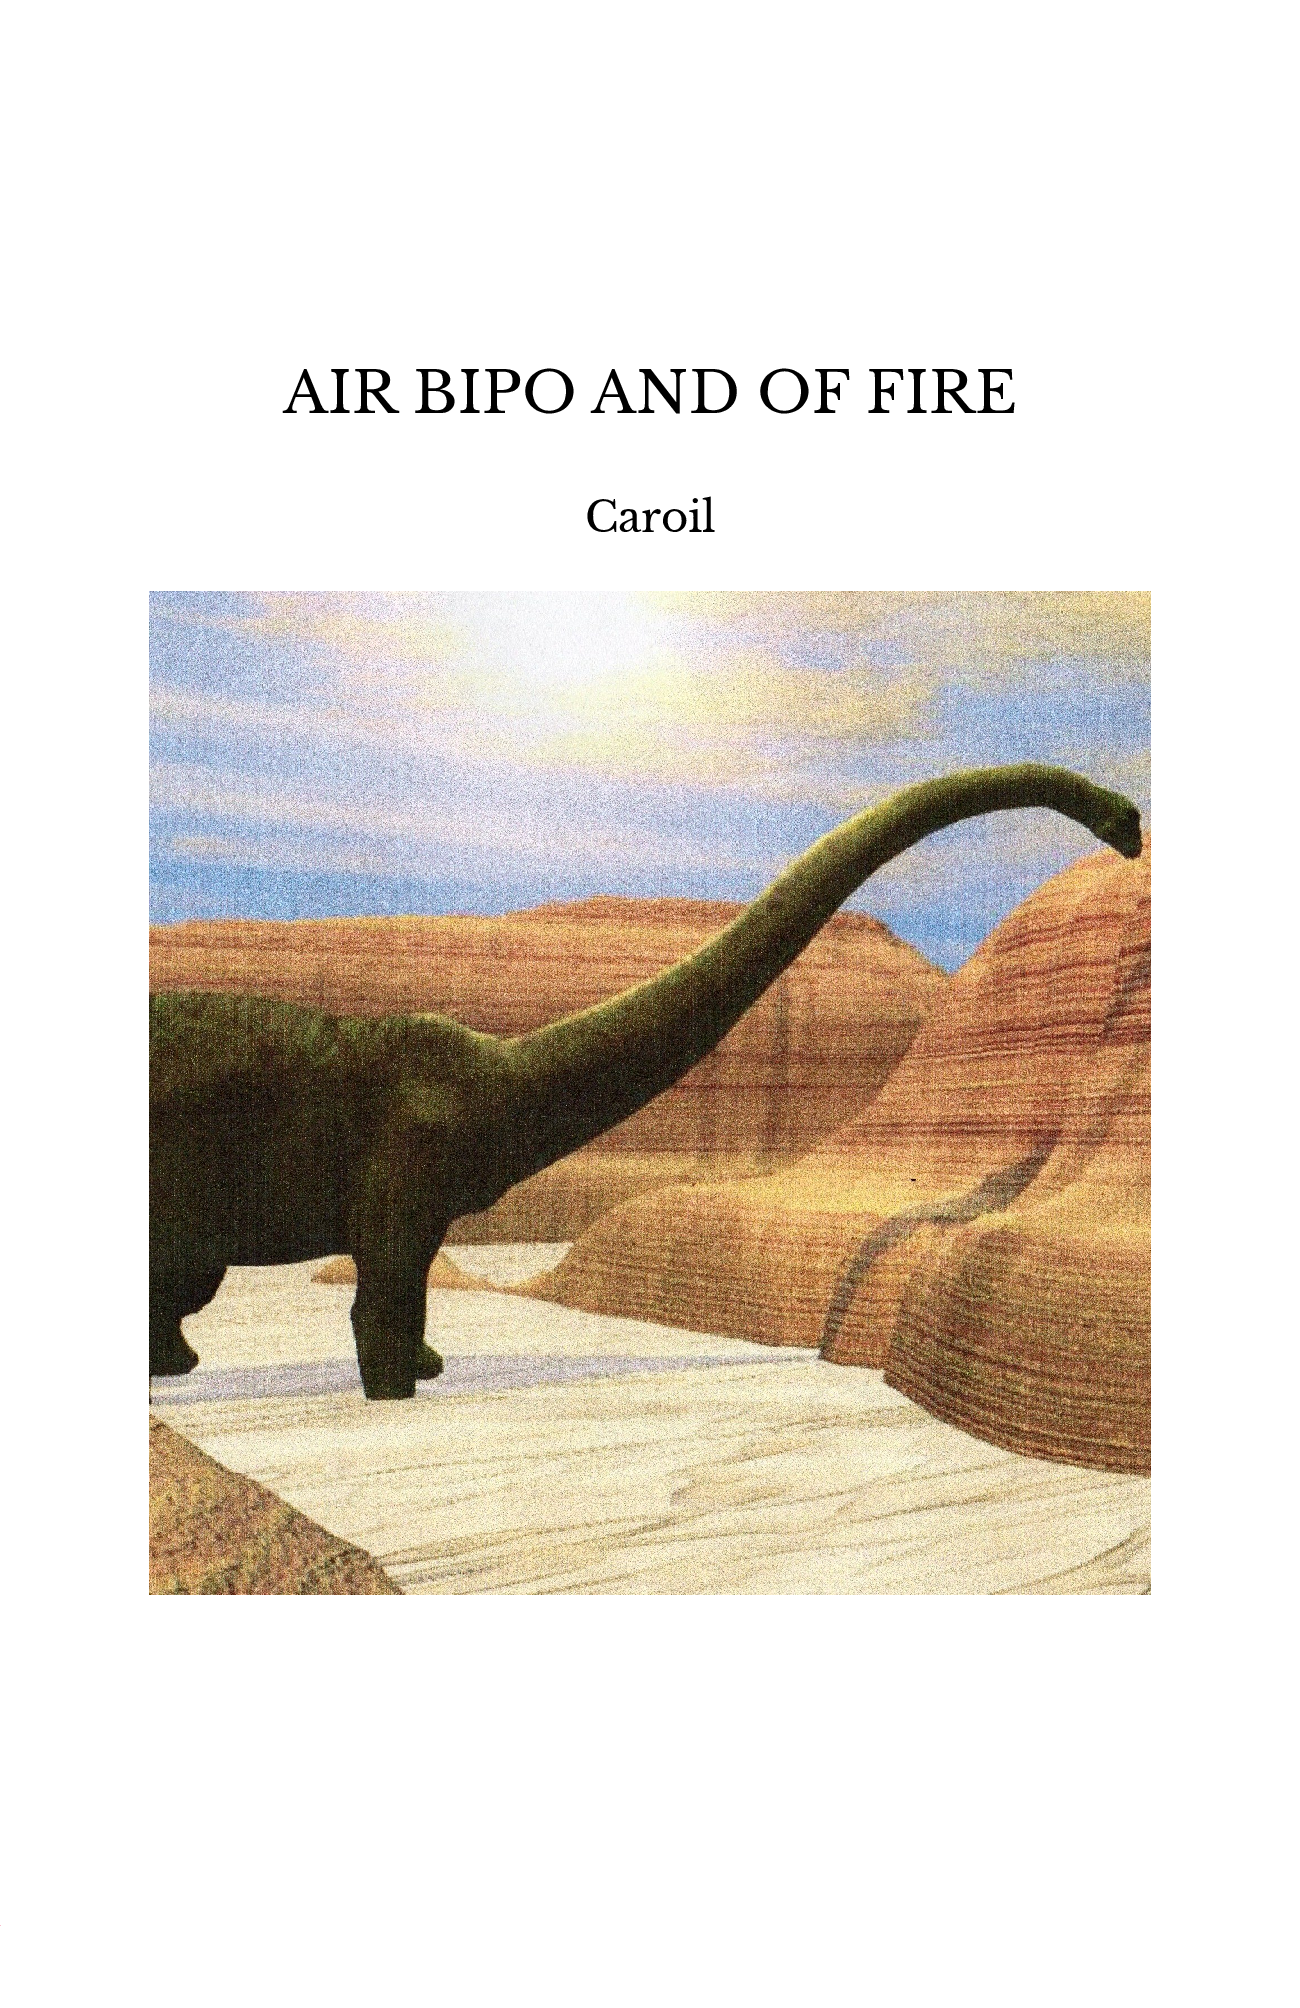 AIR BIPO AND OF FIRE